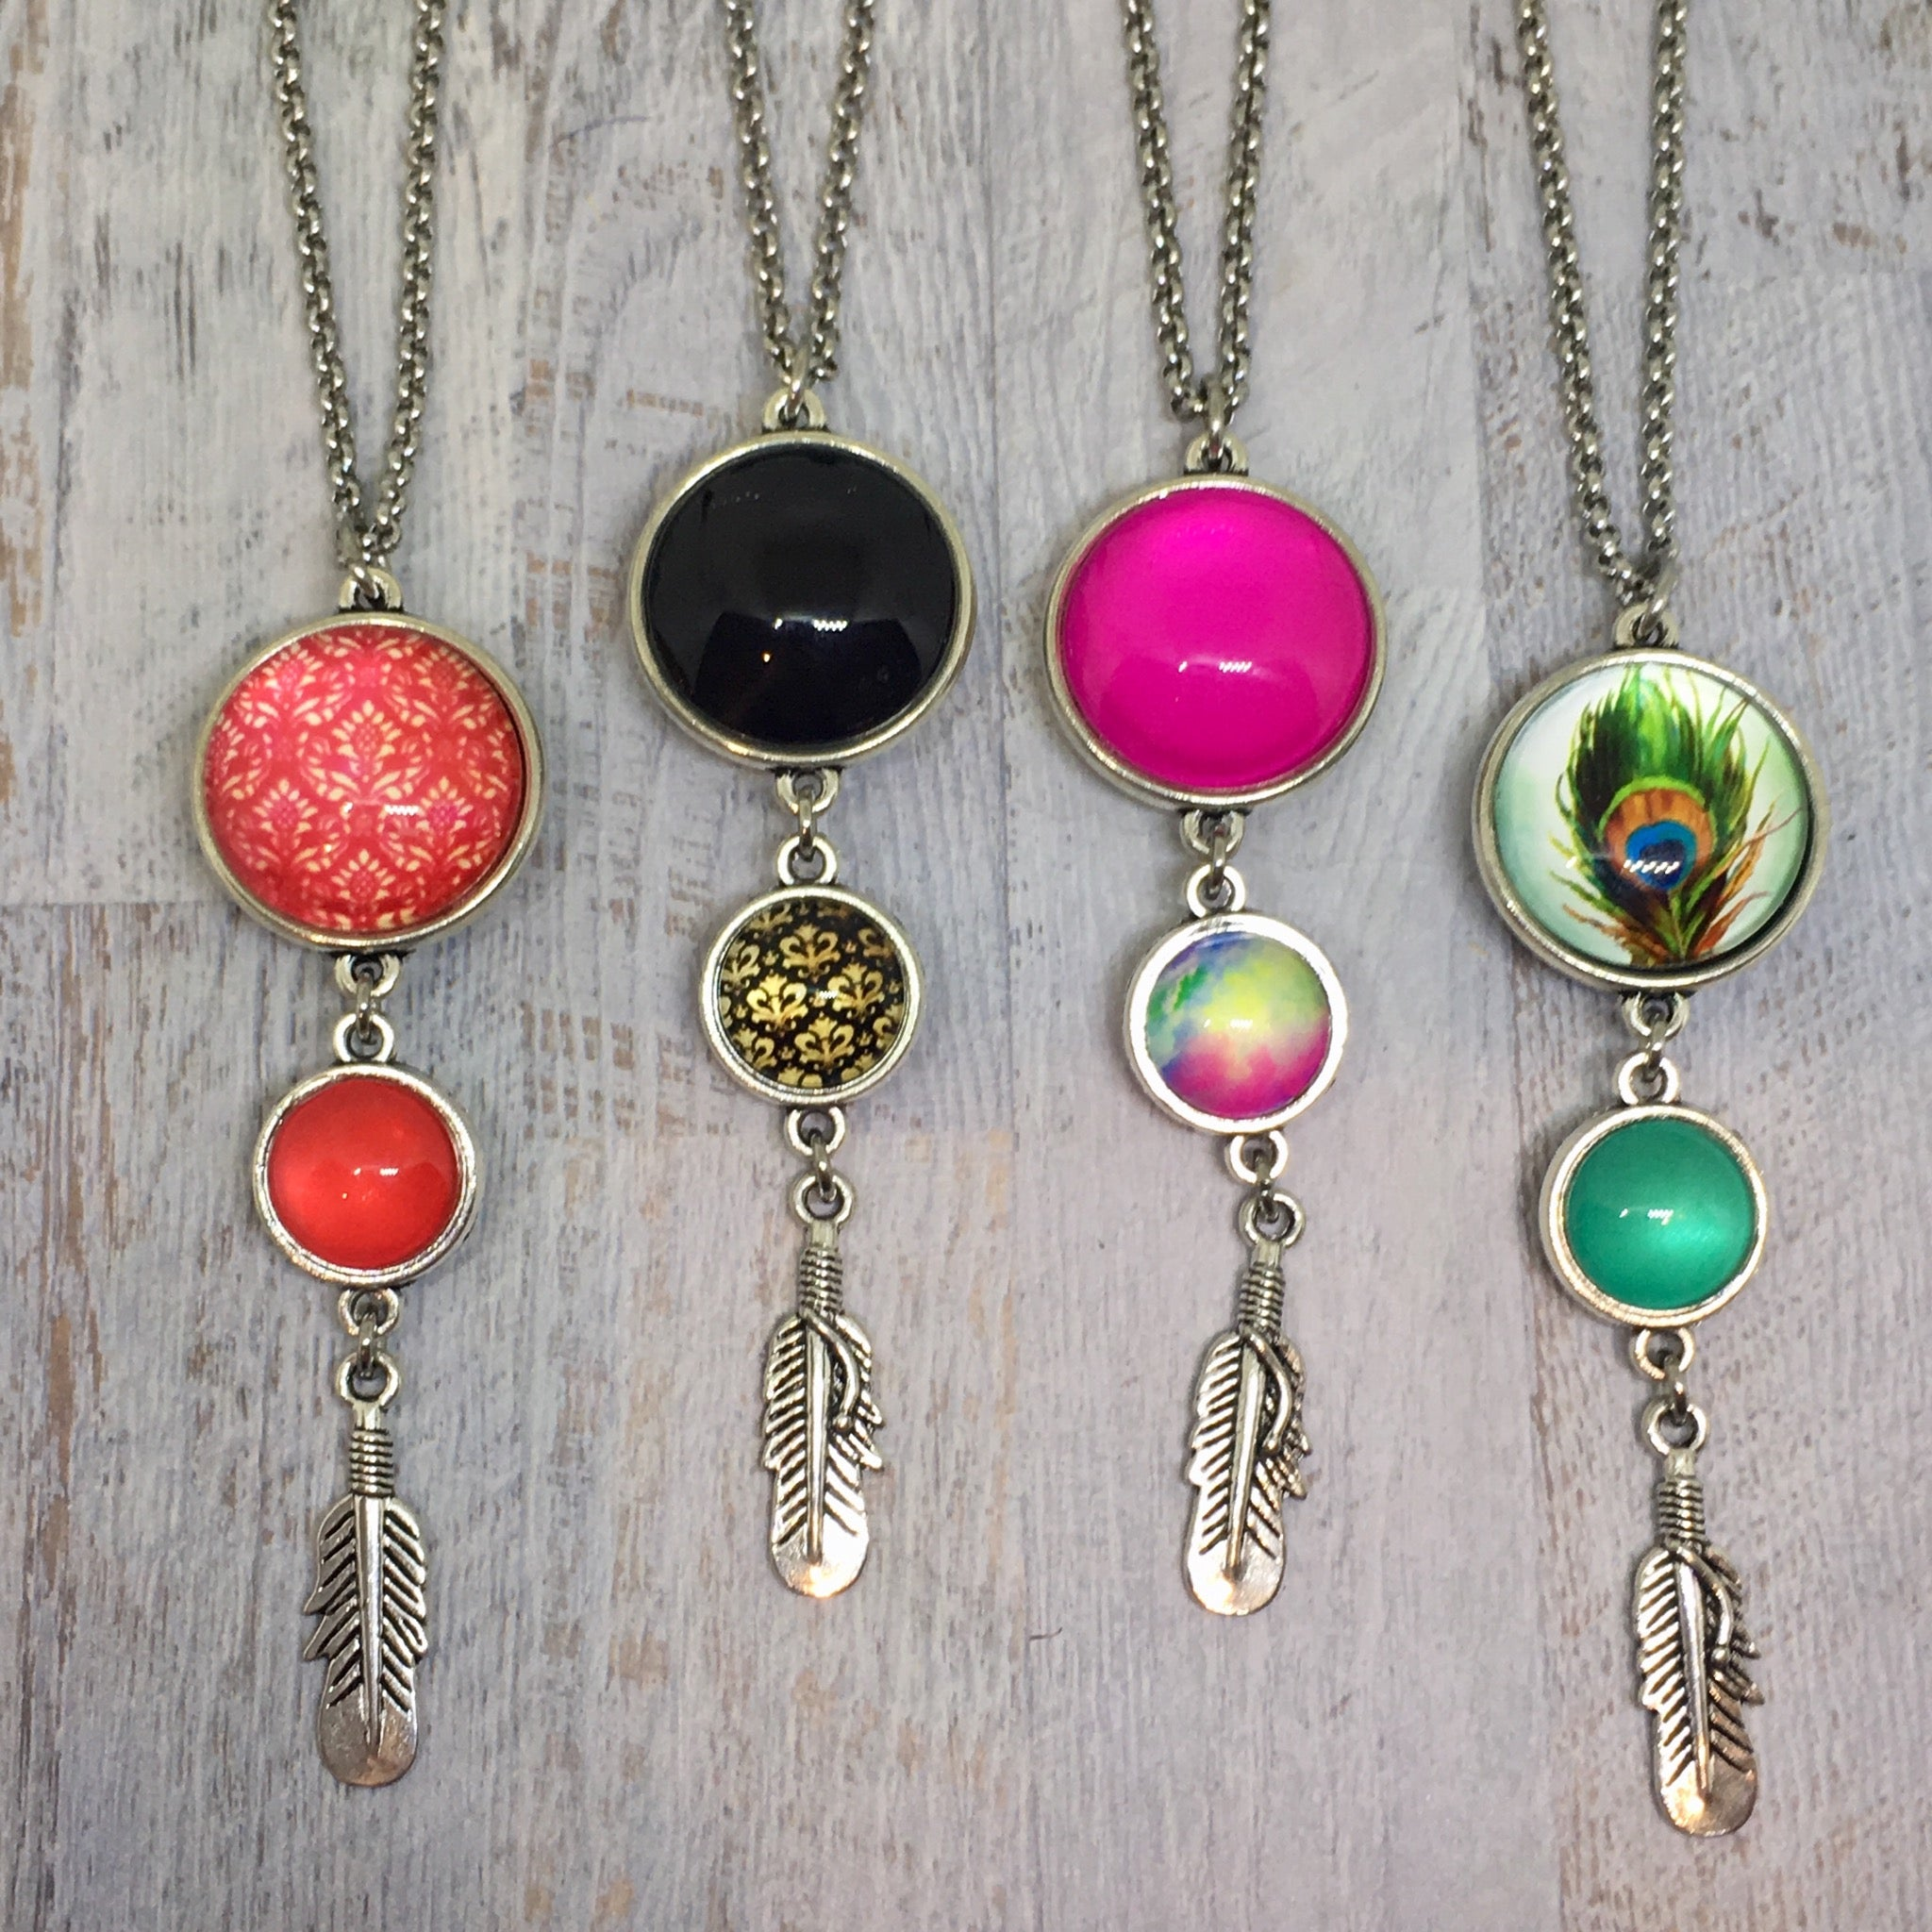 Triple Drop Dome Necklaces - Lots of styles